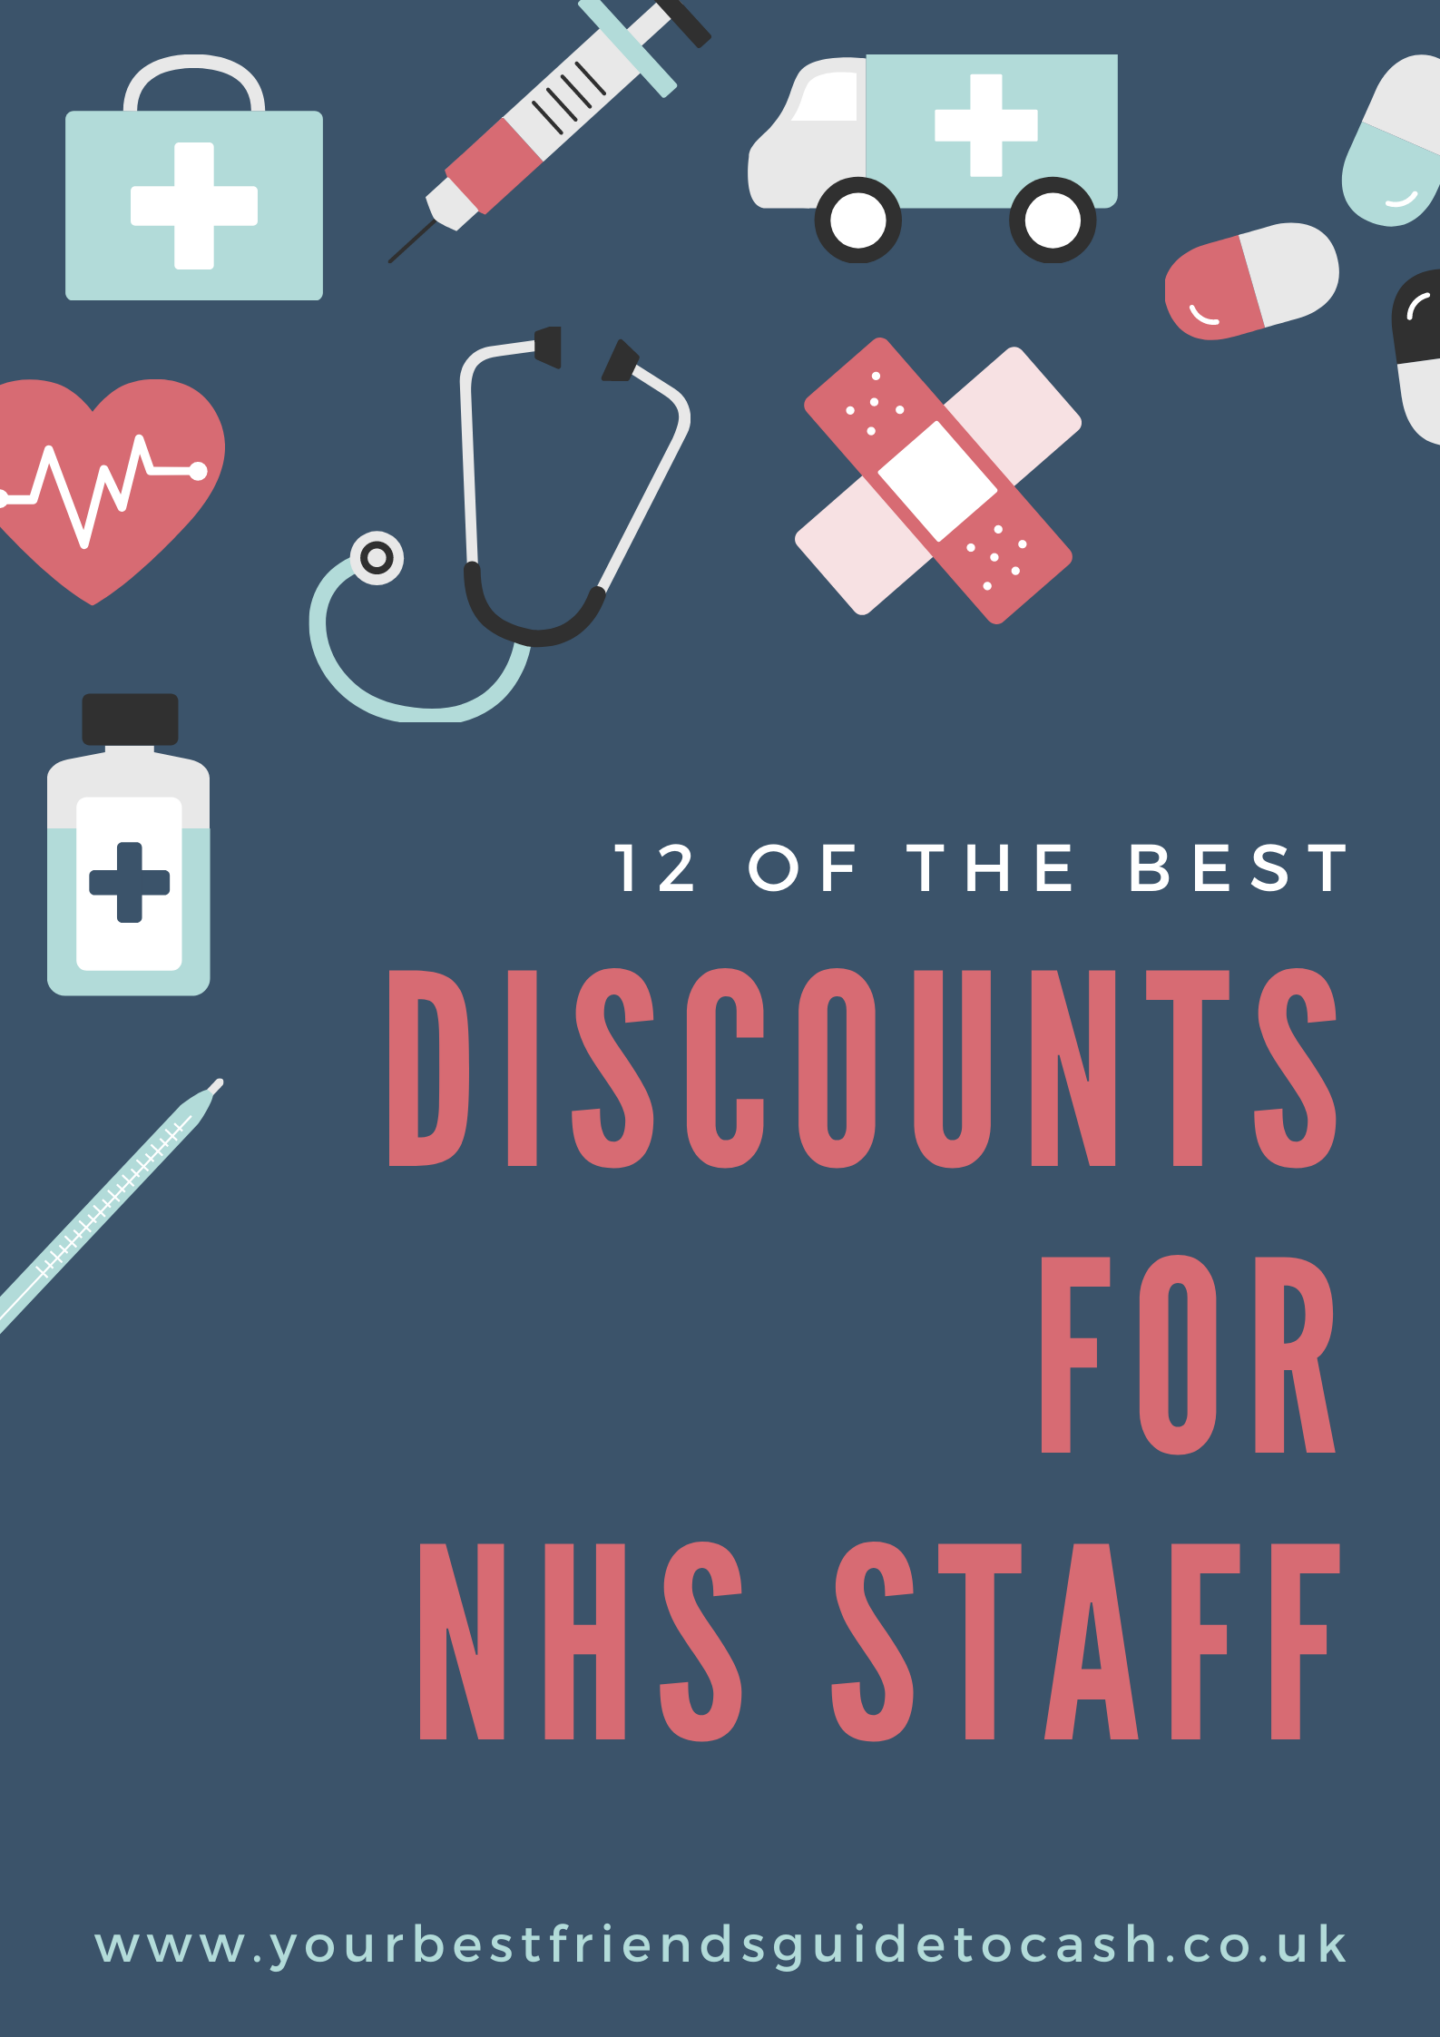 12 great NHS staff discounts